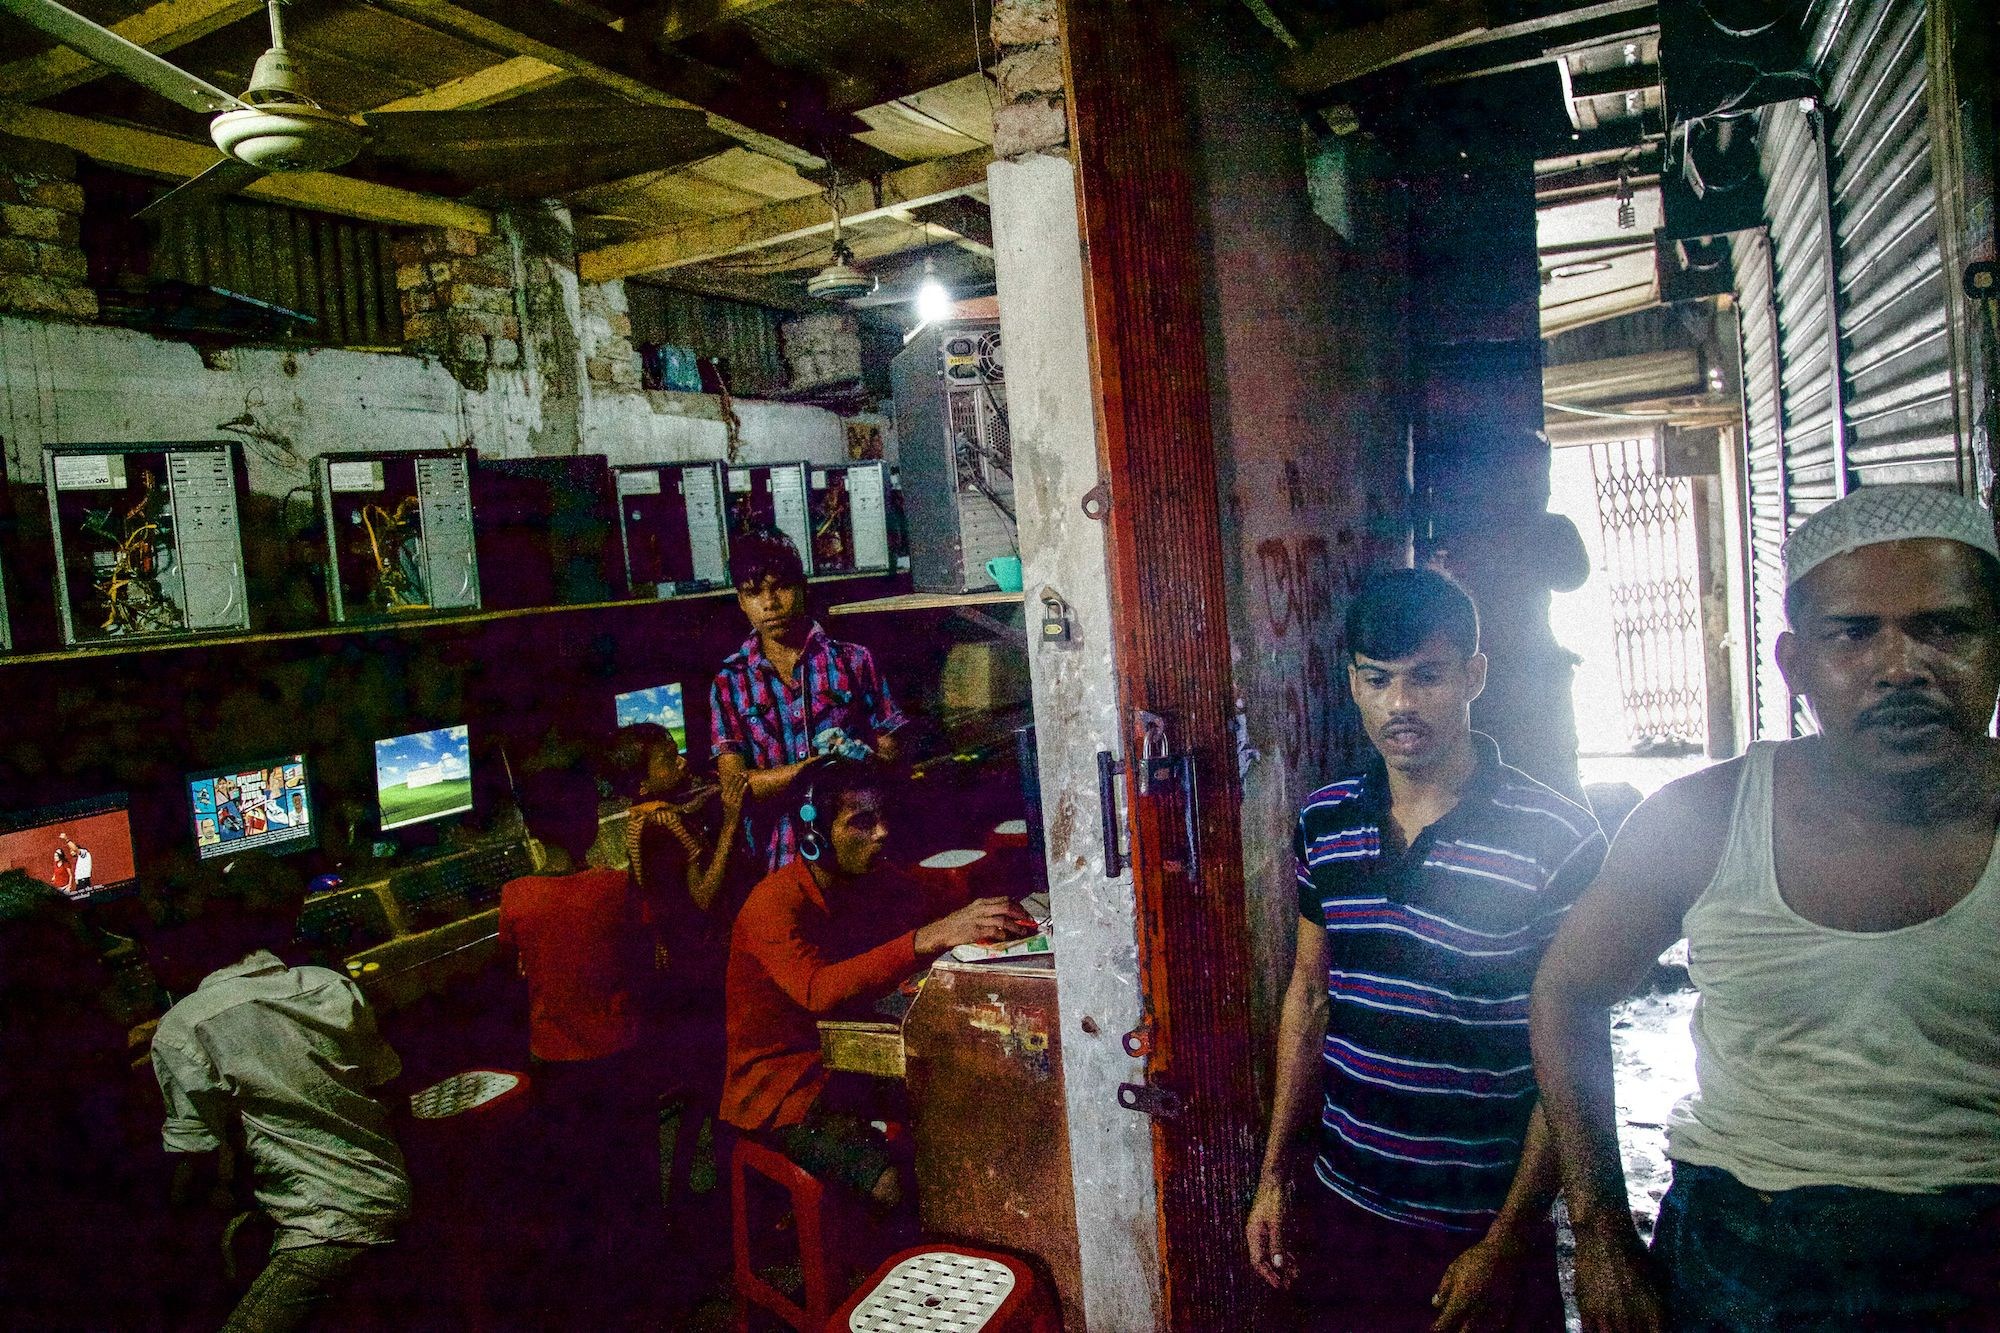 gaming in dhaka photo essay  video game dens are crammed into back alleys they are the only entertainment available to many